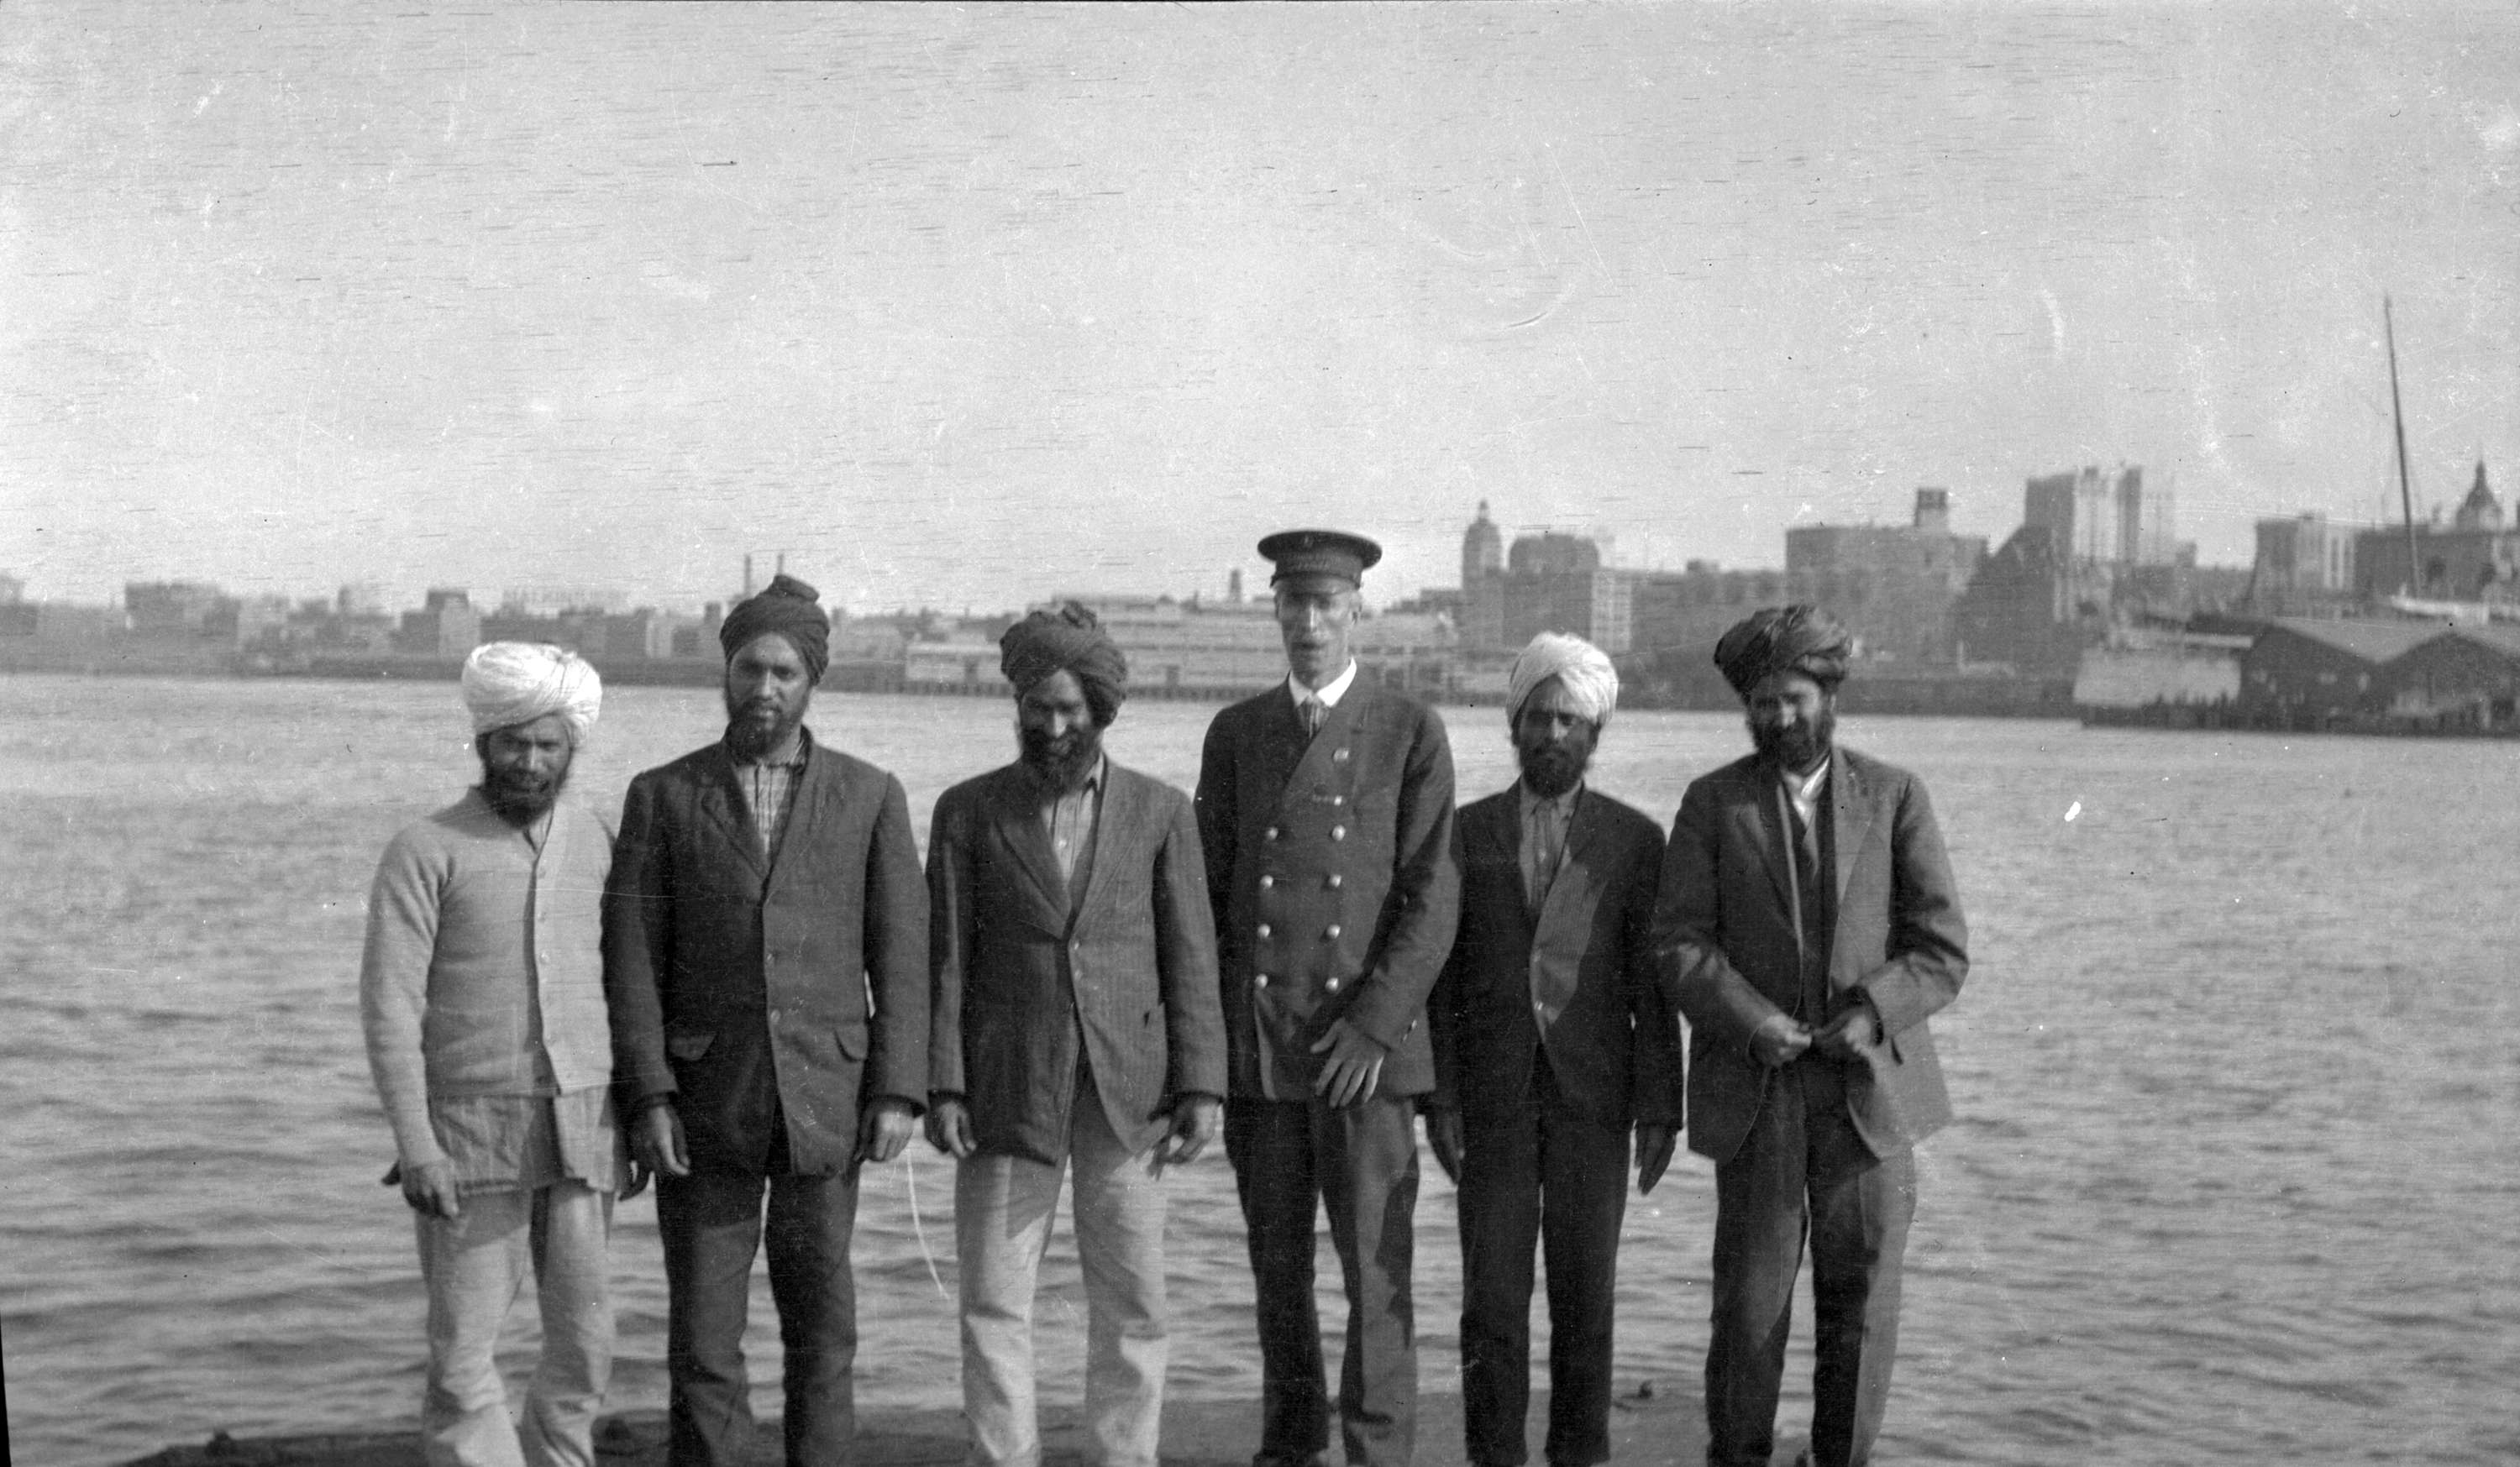 Passengers from the SS Komagata Maru, 1914.